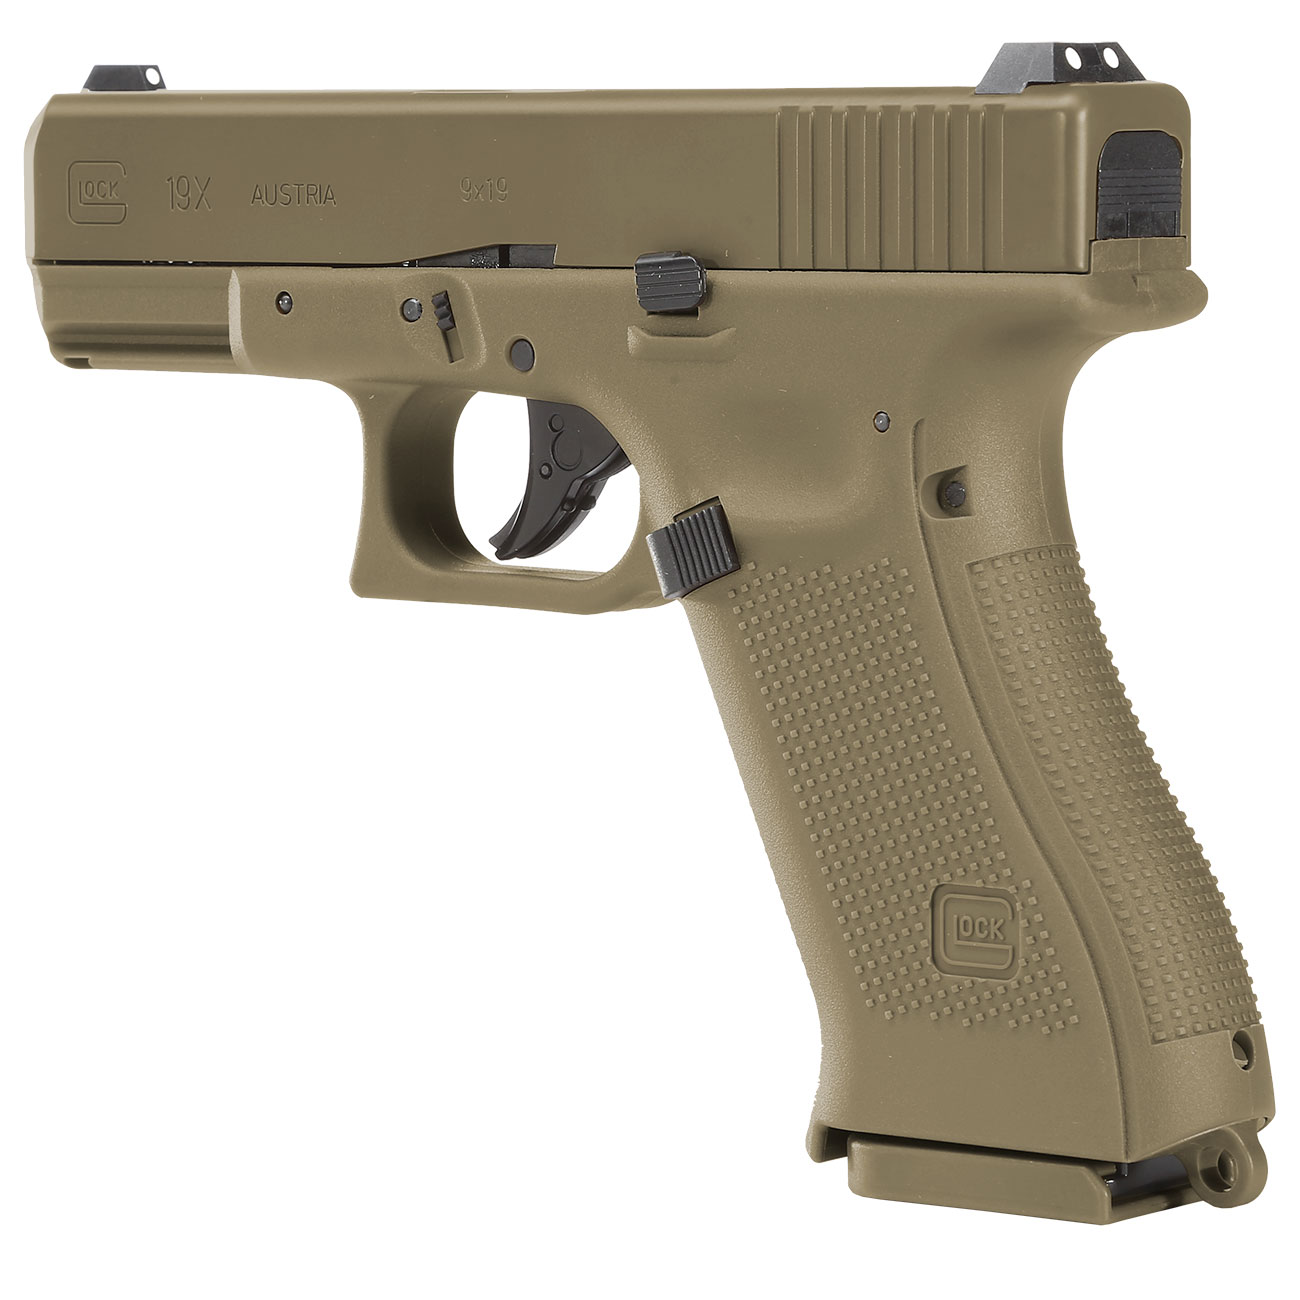 Glock 19X CO2-Luftpistole Kal. 4,5mm Stahl-BB coyote tan Blowback 3